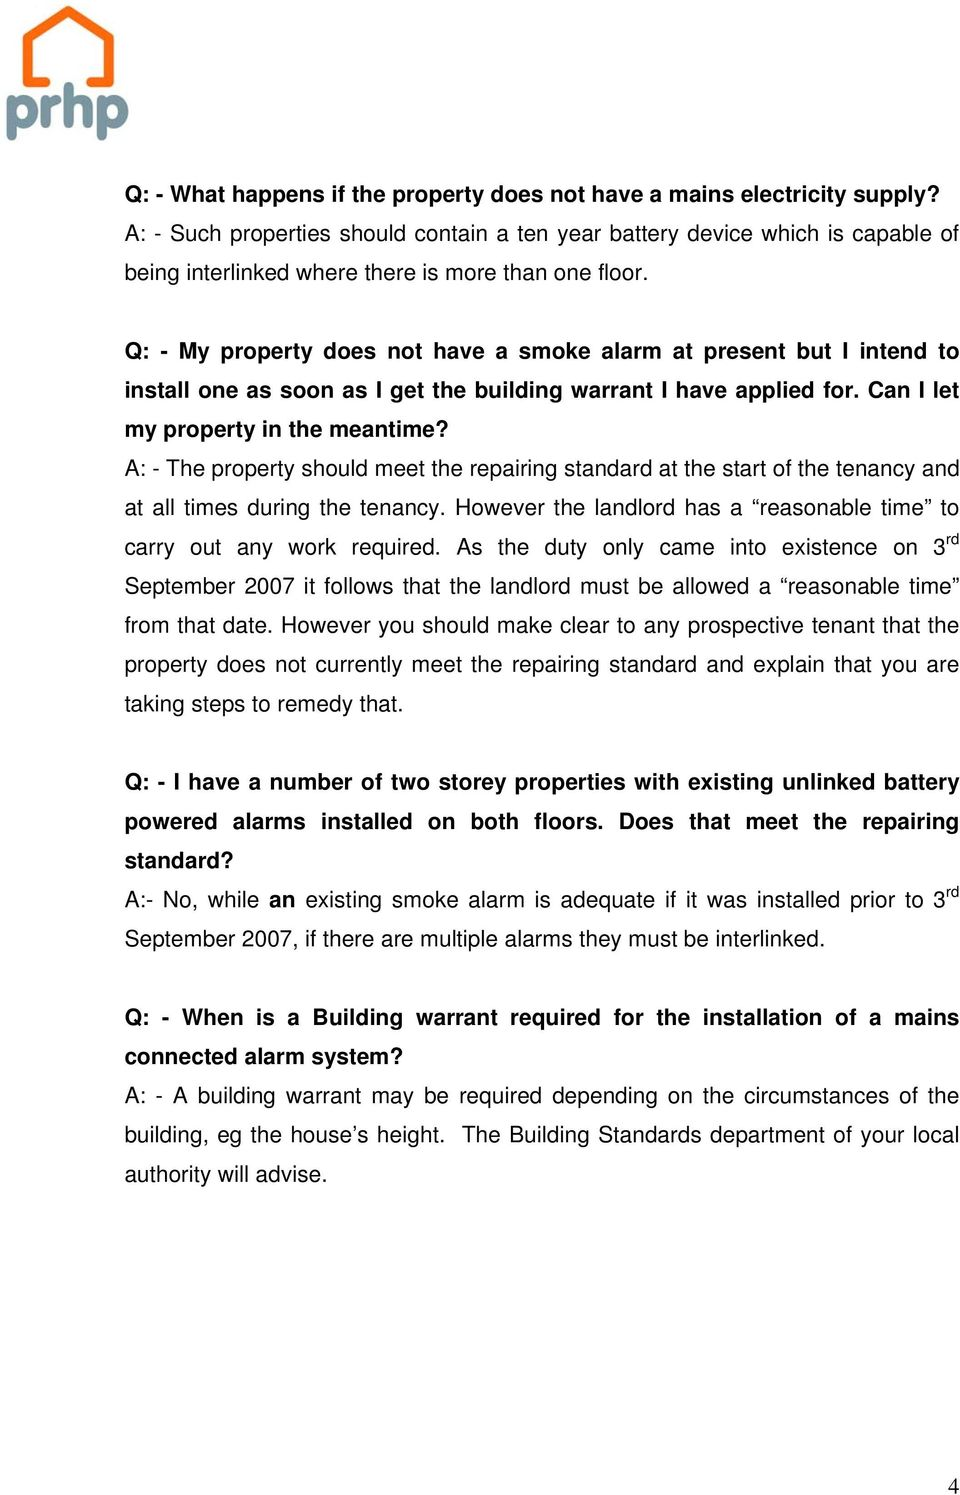 Q: - My property does not have a smoke alarm at present but I intend to install one as soon as I get the building warrant I have applied for. Can I let my property in the meantime?